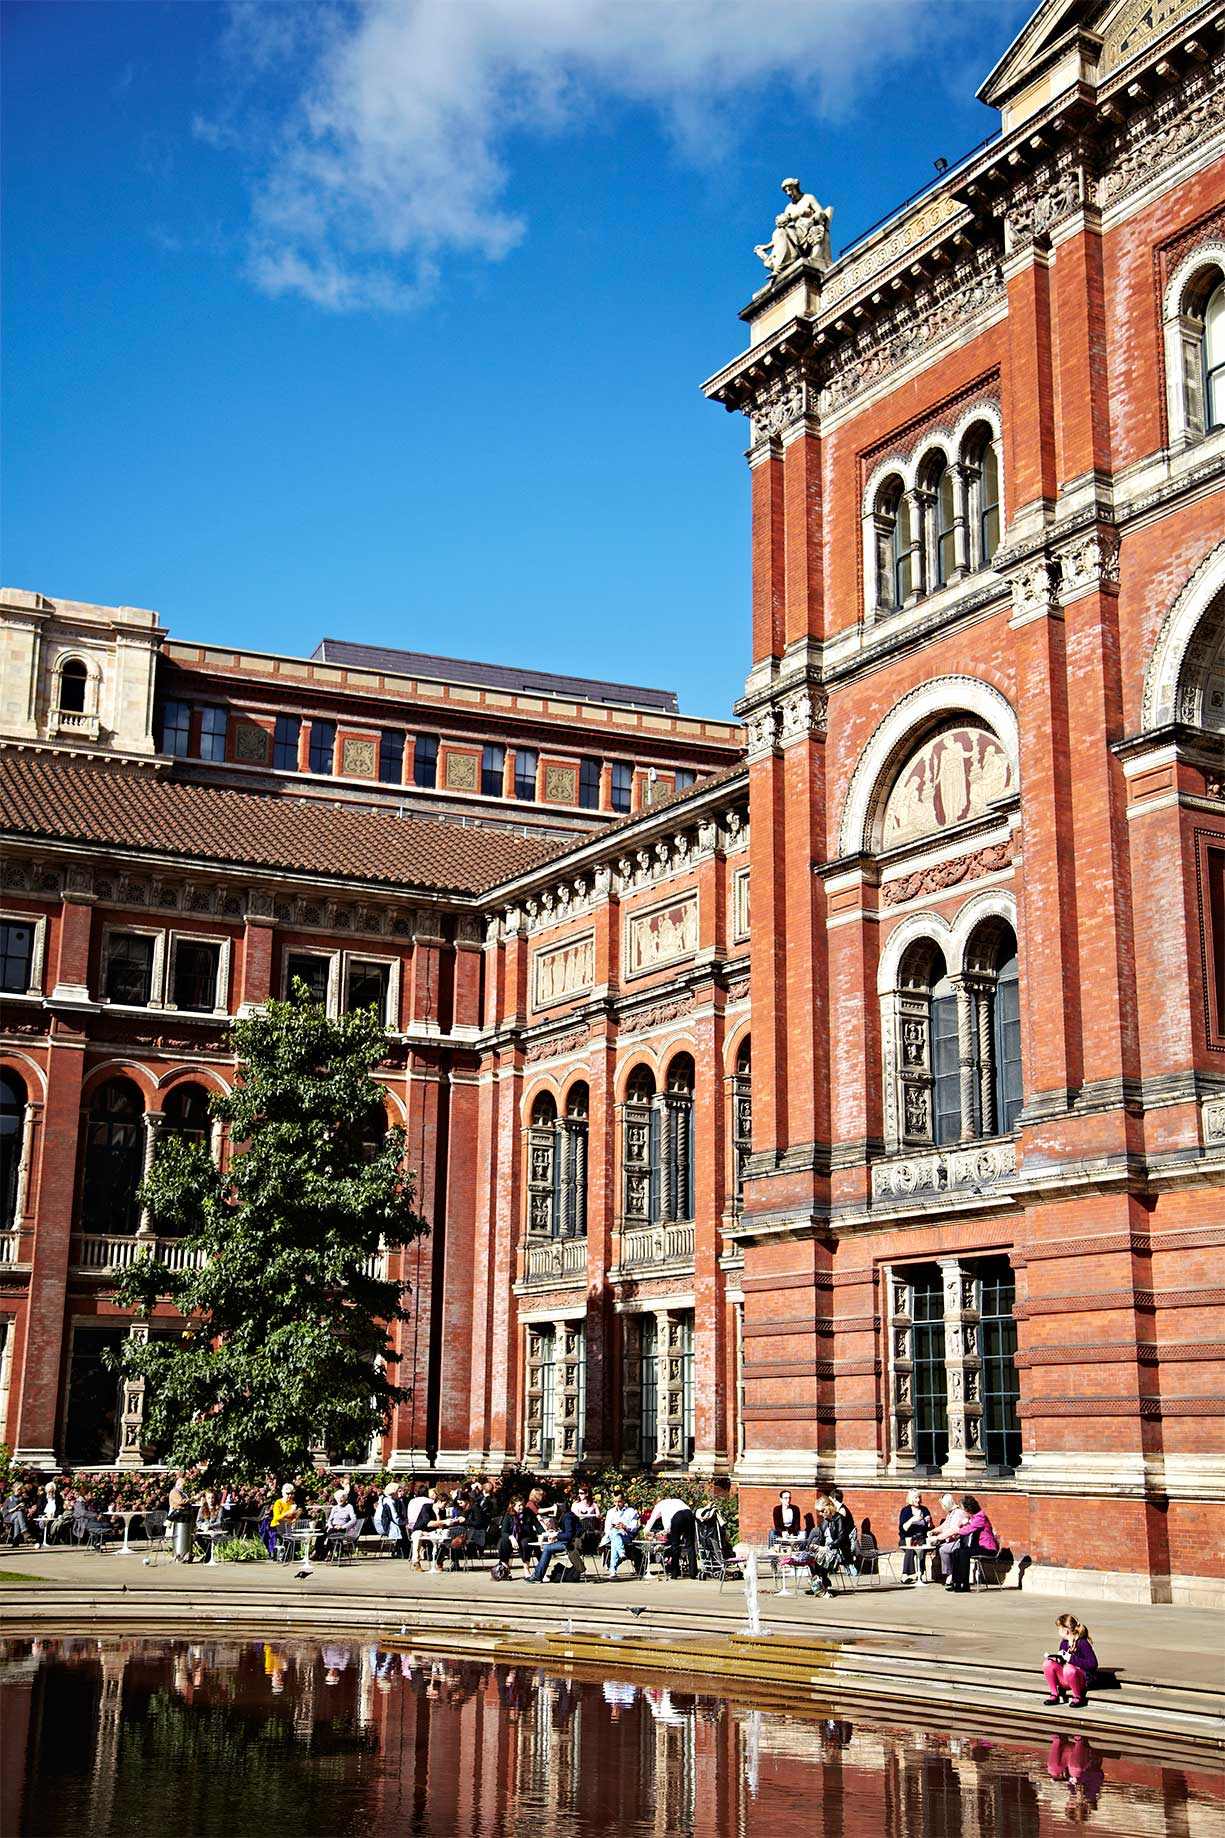 Victoria-and-albert_Museum_Restaurant_Brick-building_London